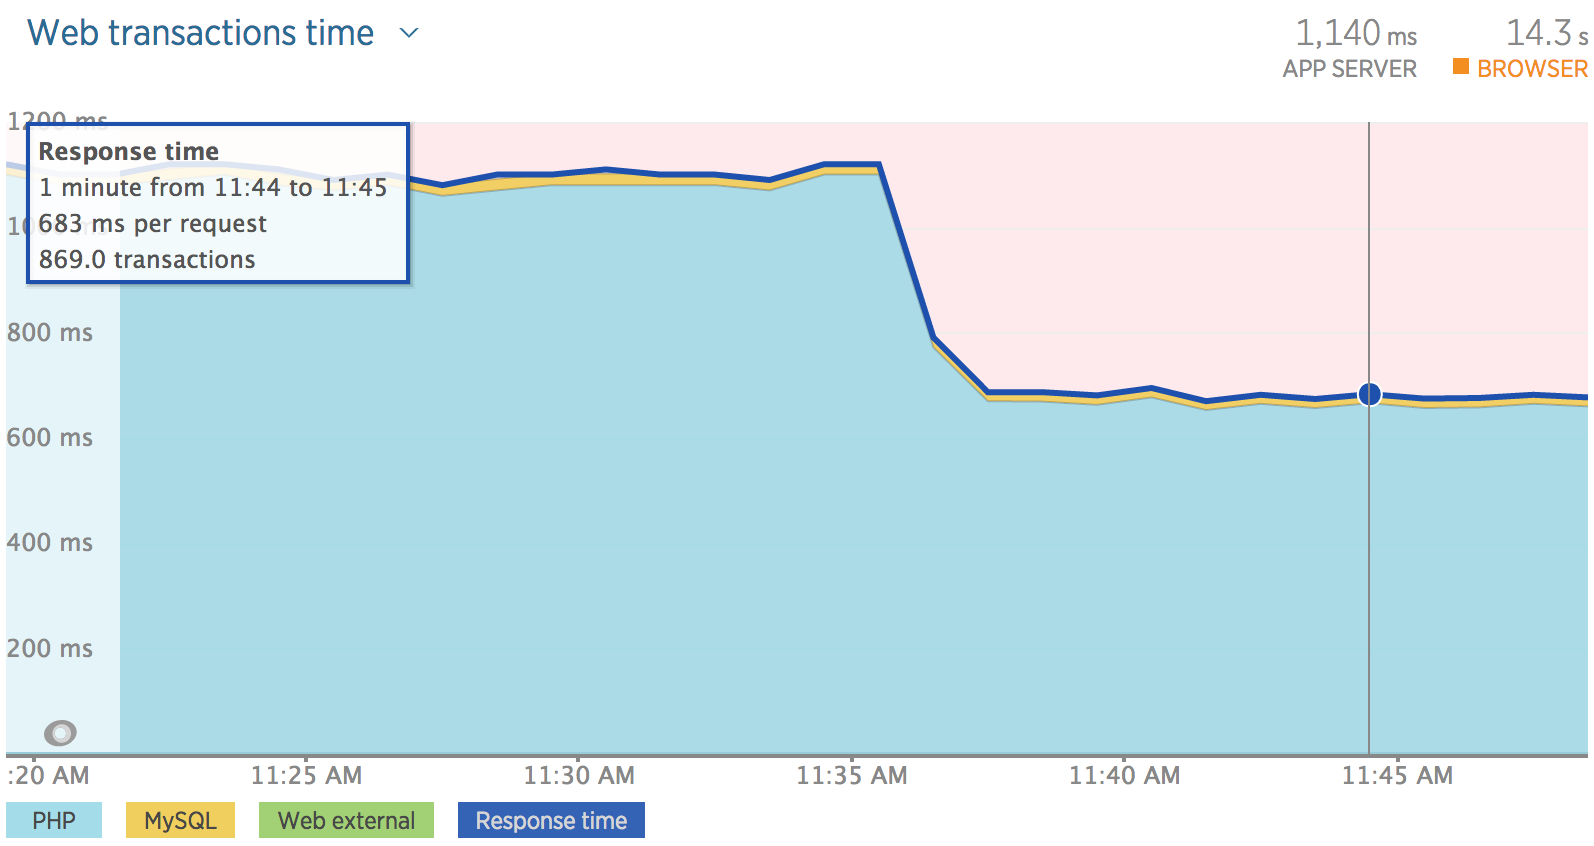 Graph showing improvement in web transaction performance when upgrading from PHP 5.6 to PHP 7.0: